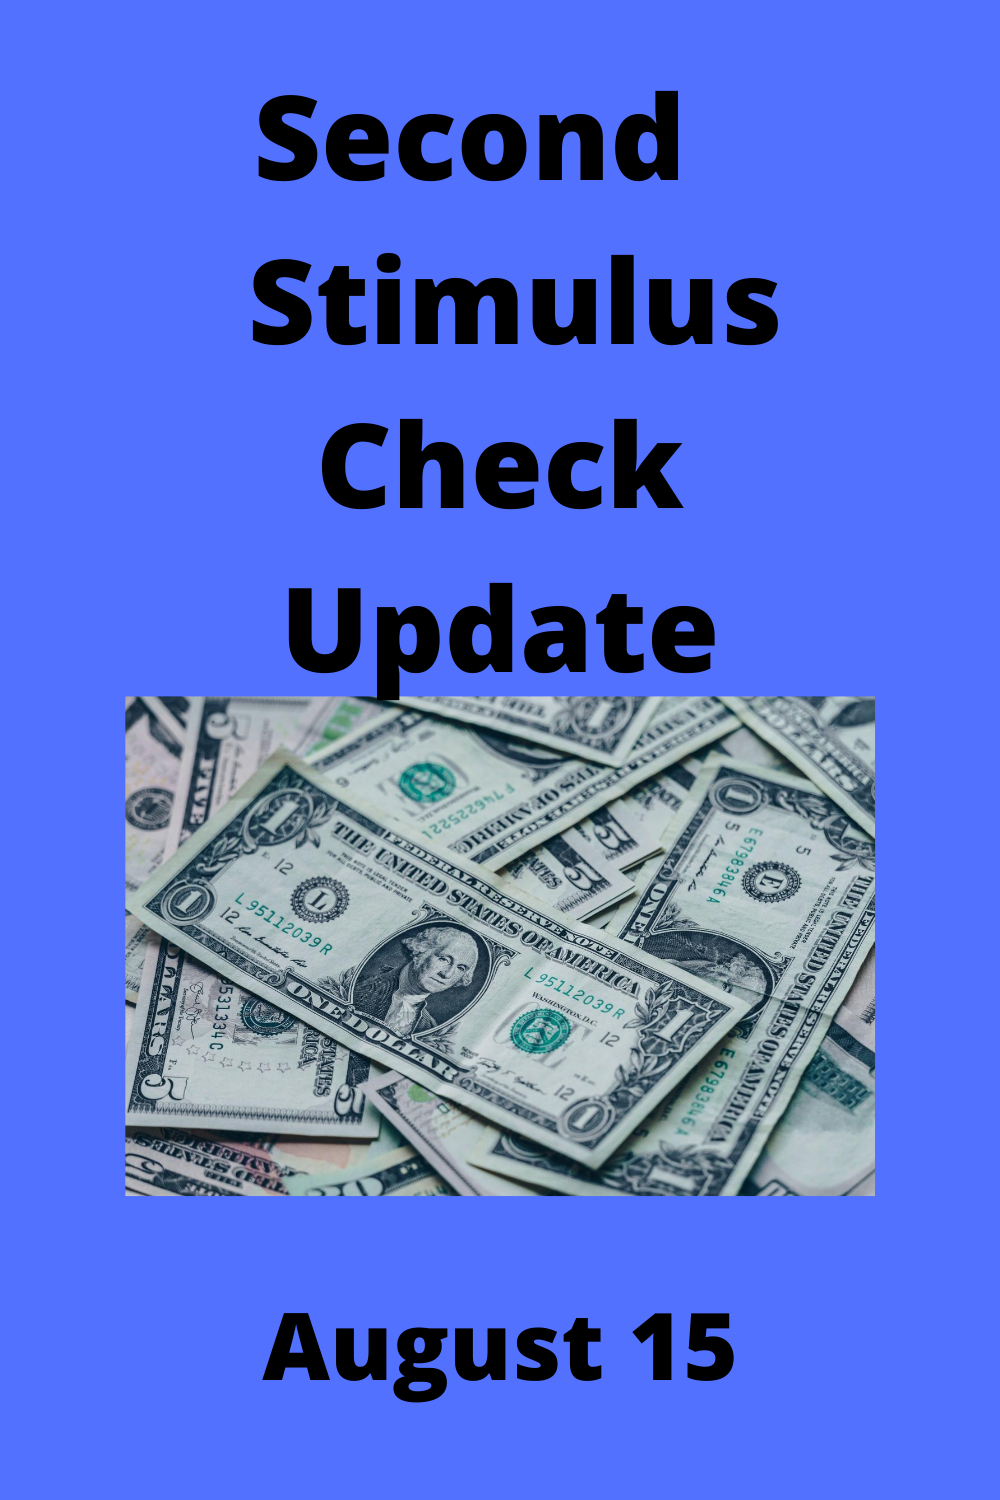 The update news on the Stimulus Check in 2020 Online